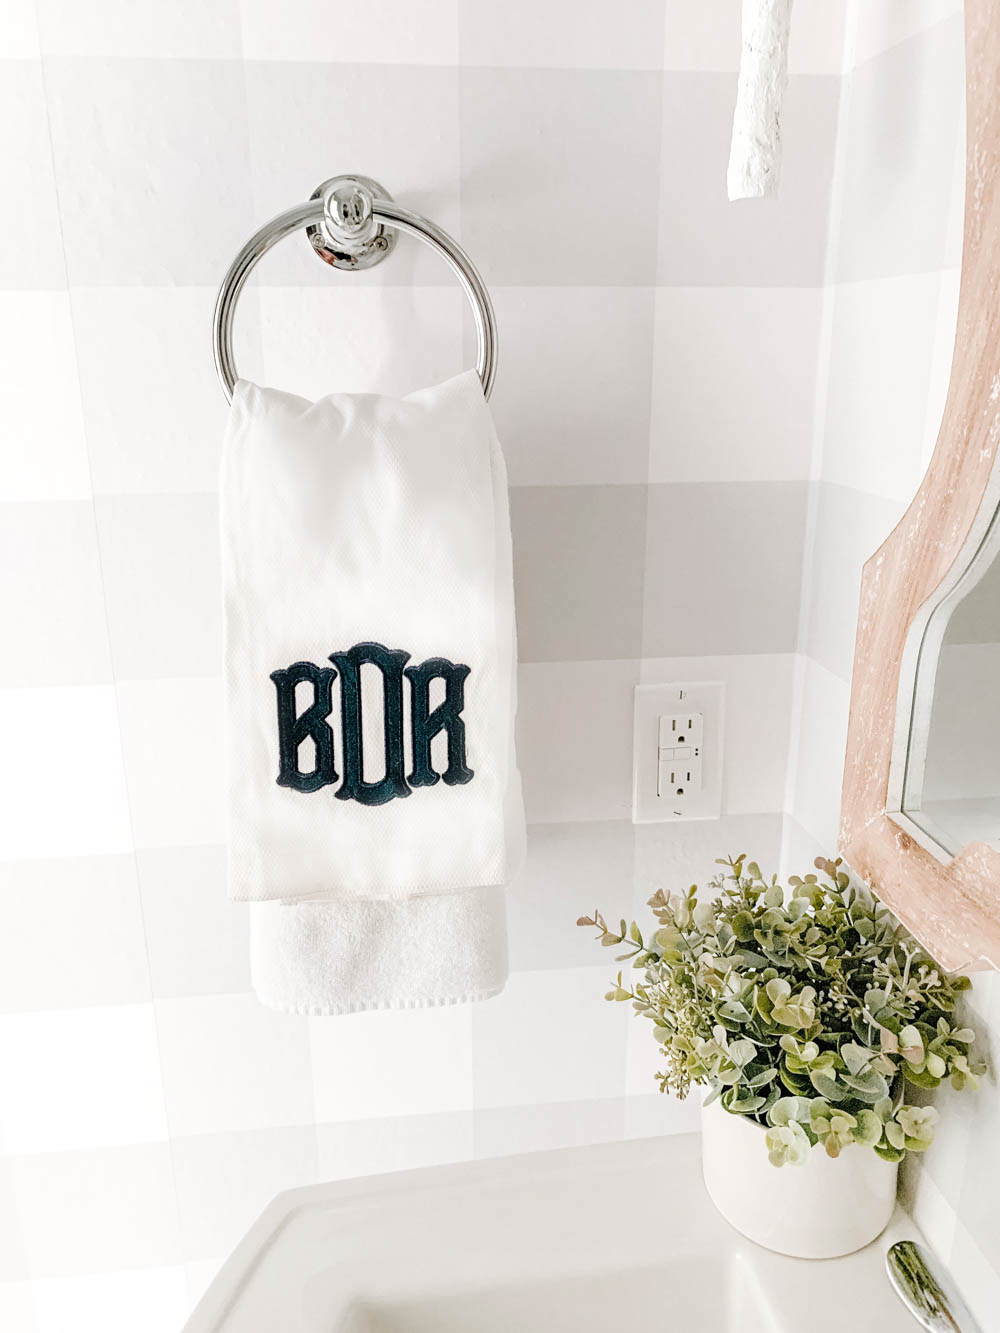 Navy blue and white monogrammed towel personalizes a beautiful powder bathroom. #ABlissfulNest #bathroommakeover #bathroom #bathroomdecor #farmhouse